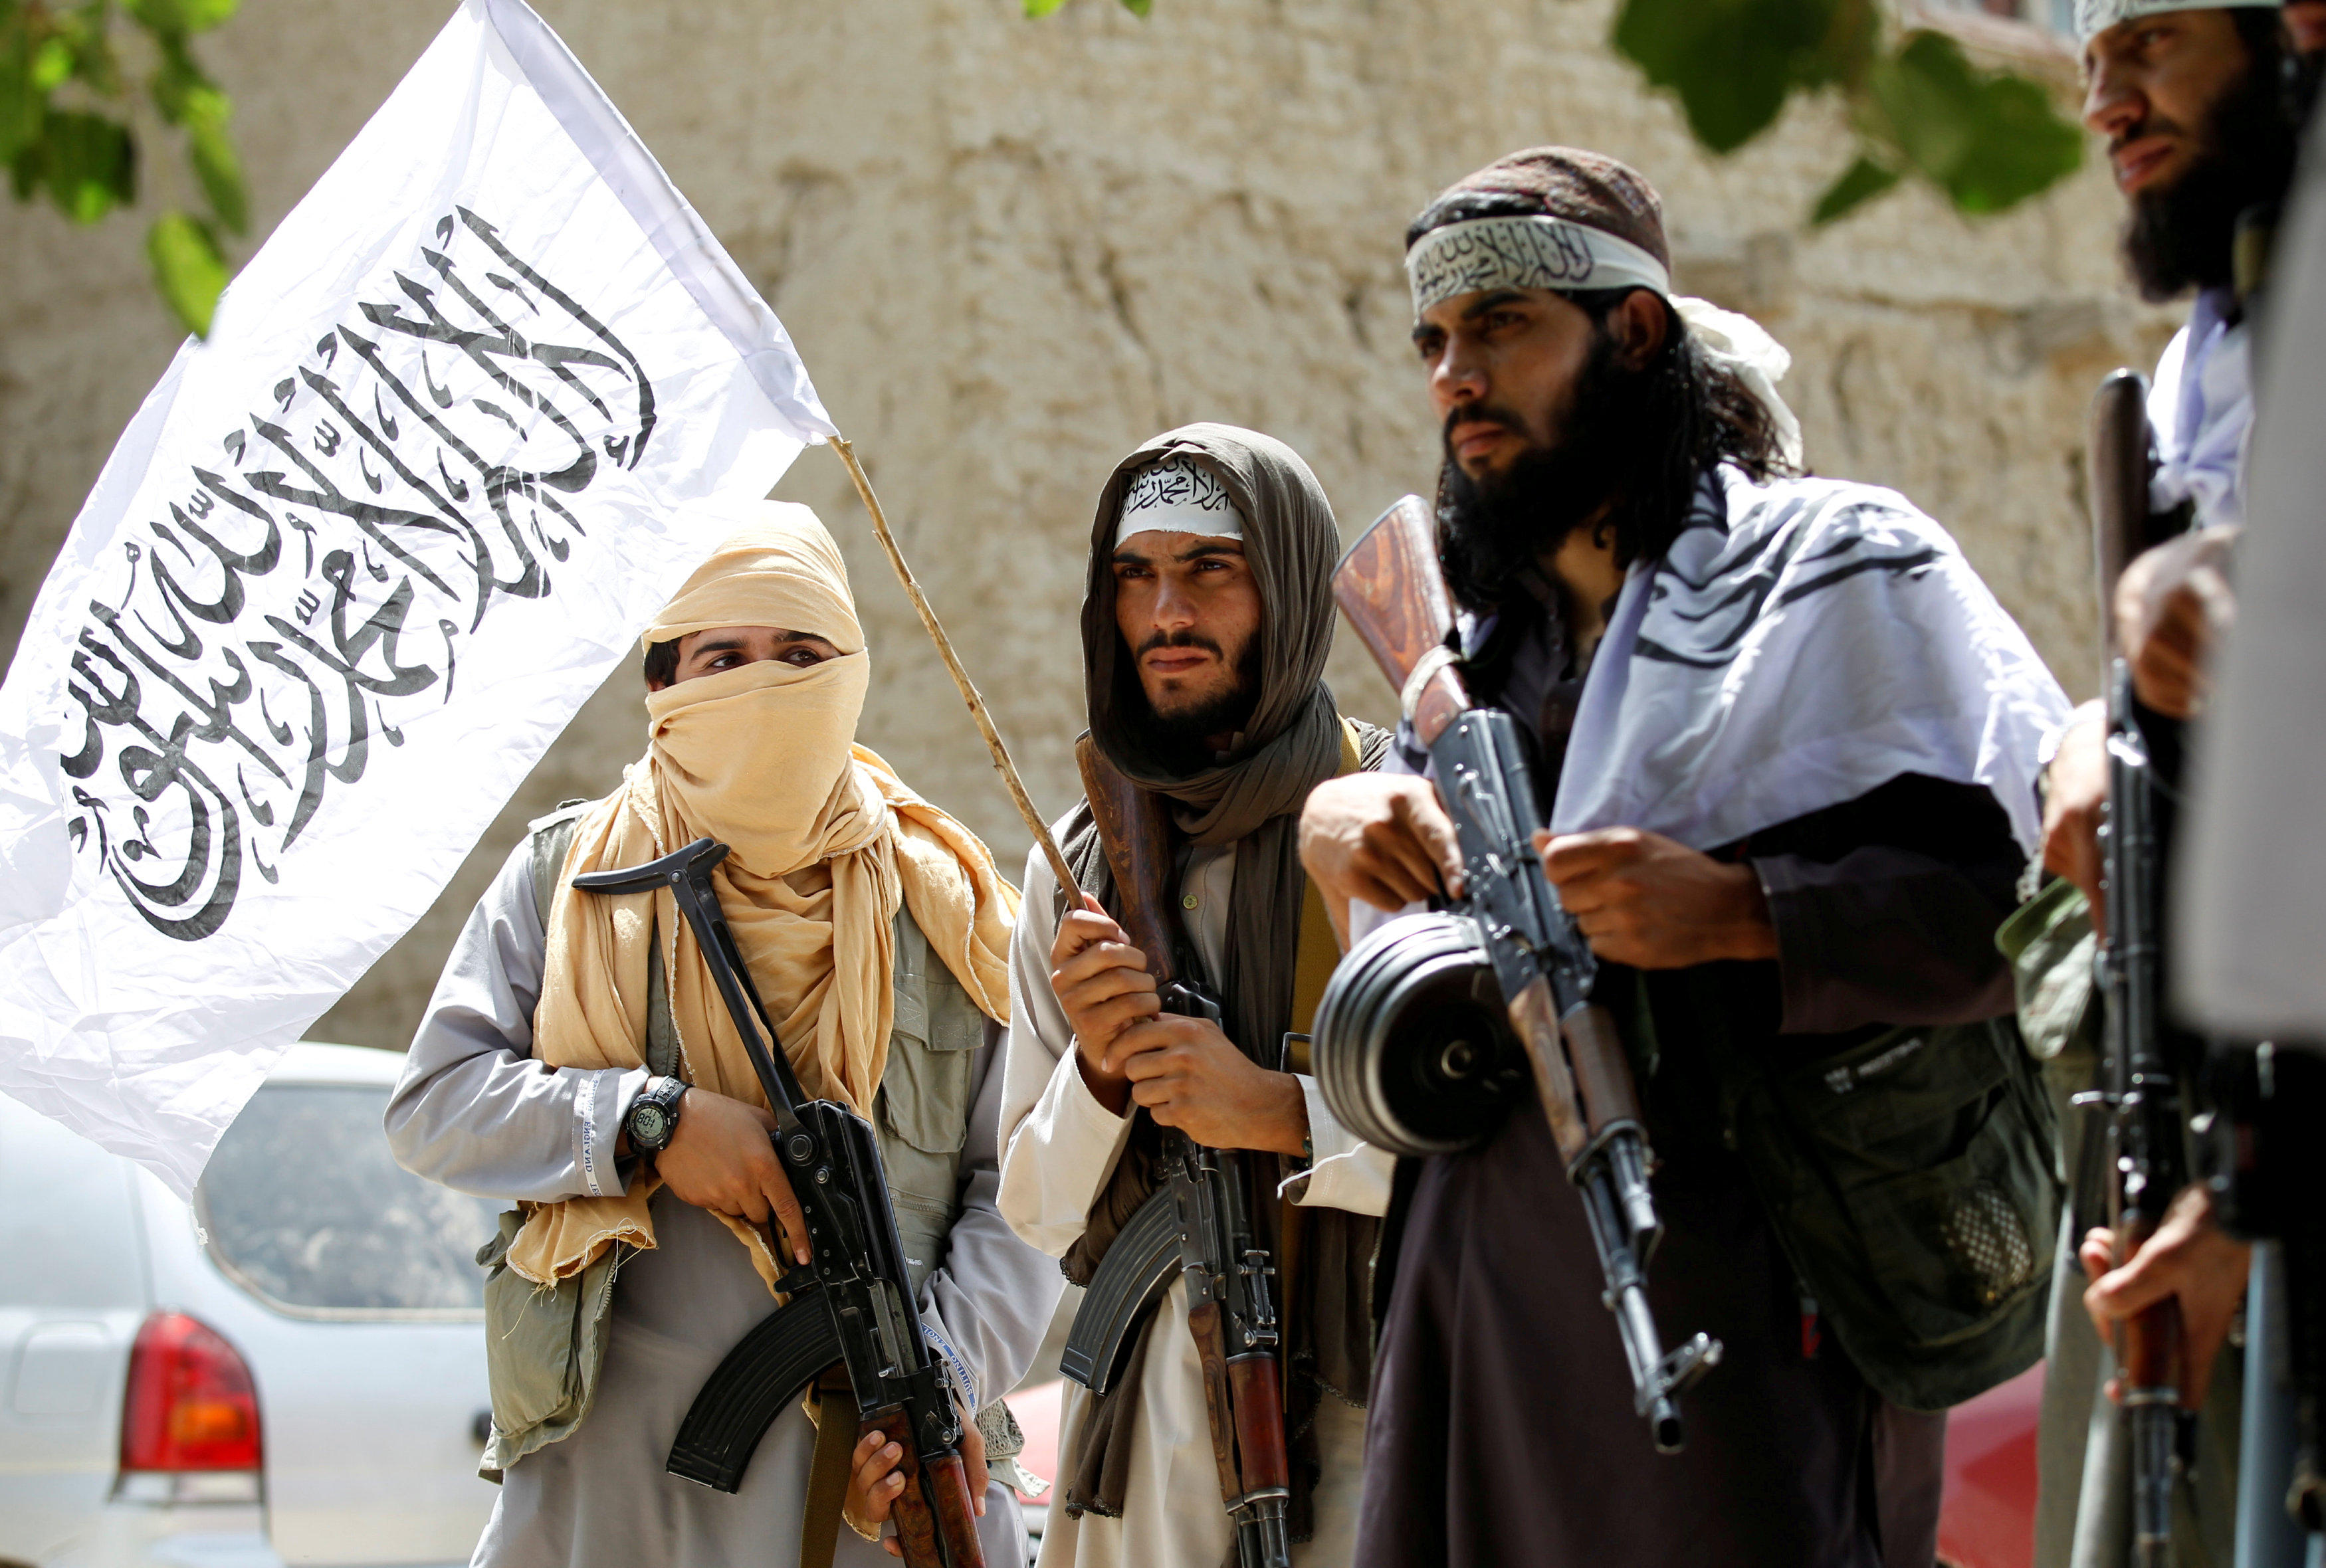 Taliban walk as they celebrate ceasefire in Ghanikhel district of Nangarhar province, Afghanistan June 16, 2018 (Photo: Reuters)